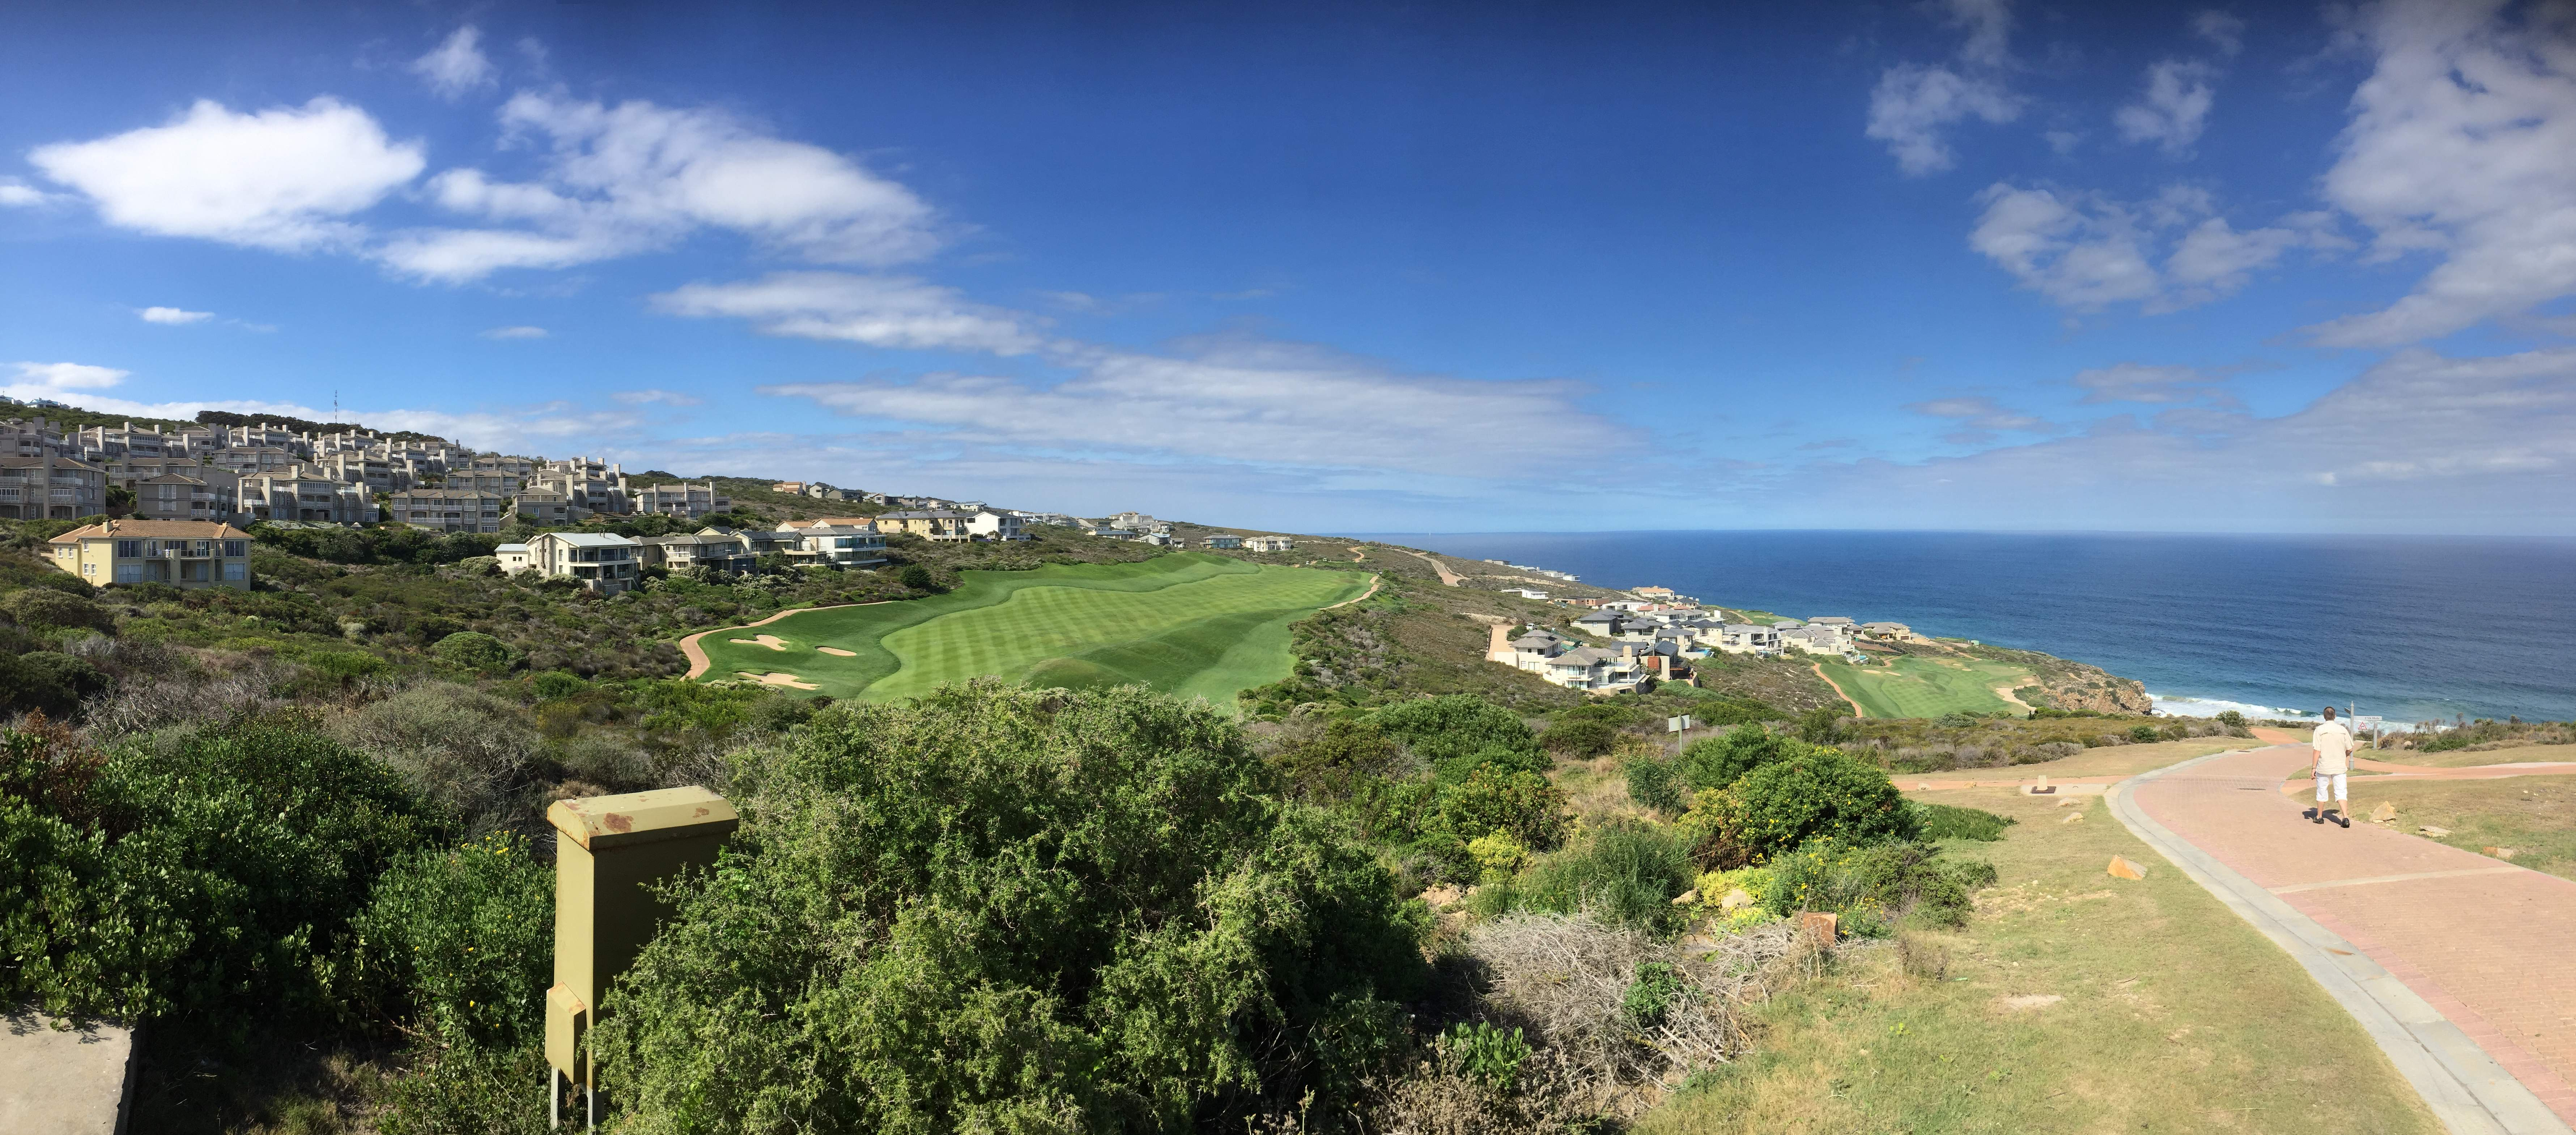 First hand golf course review of Pinnacle Point by Chaka Travel